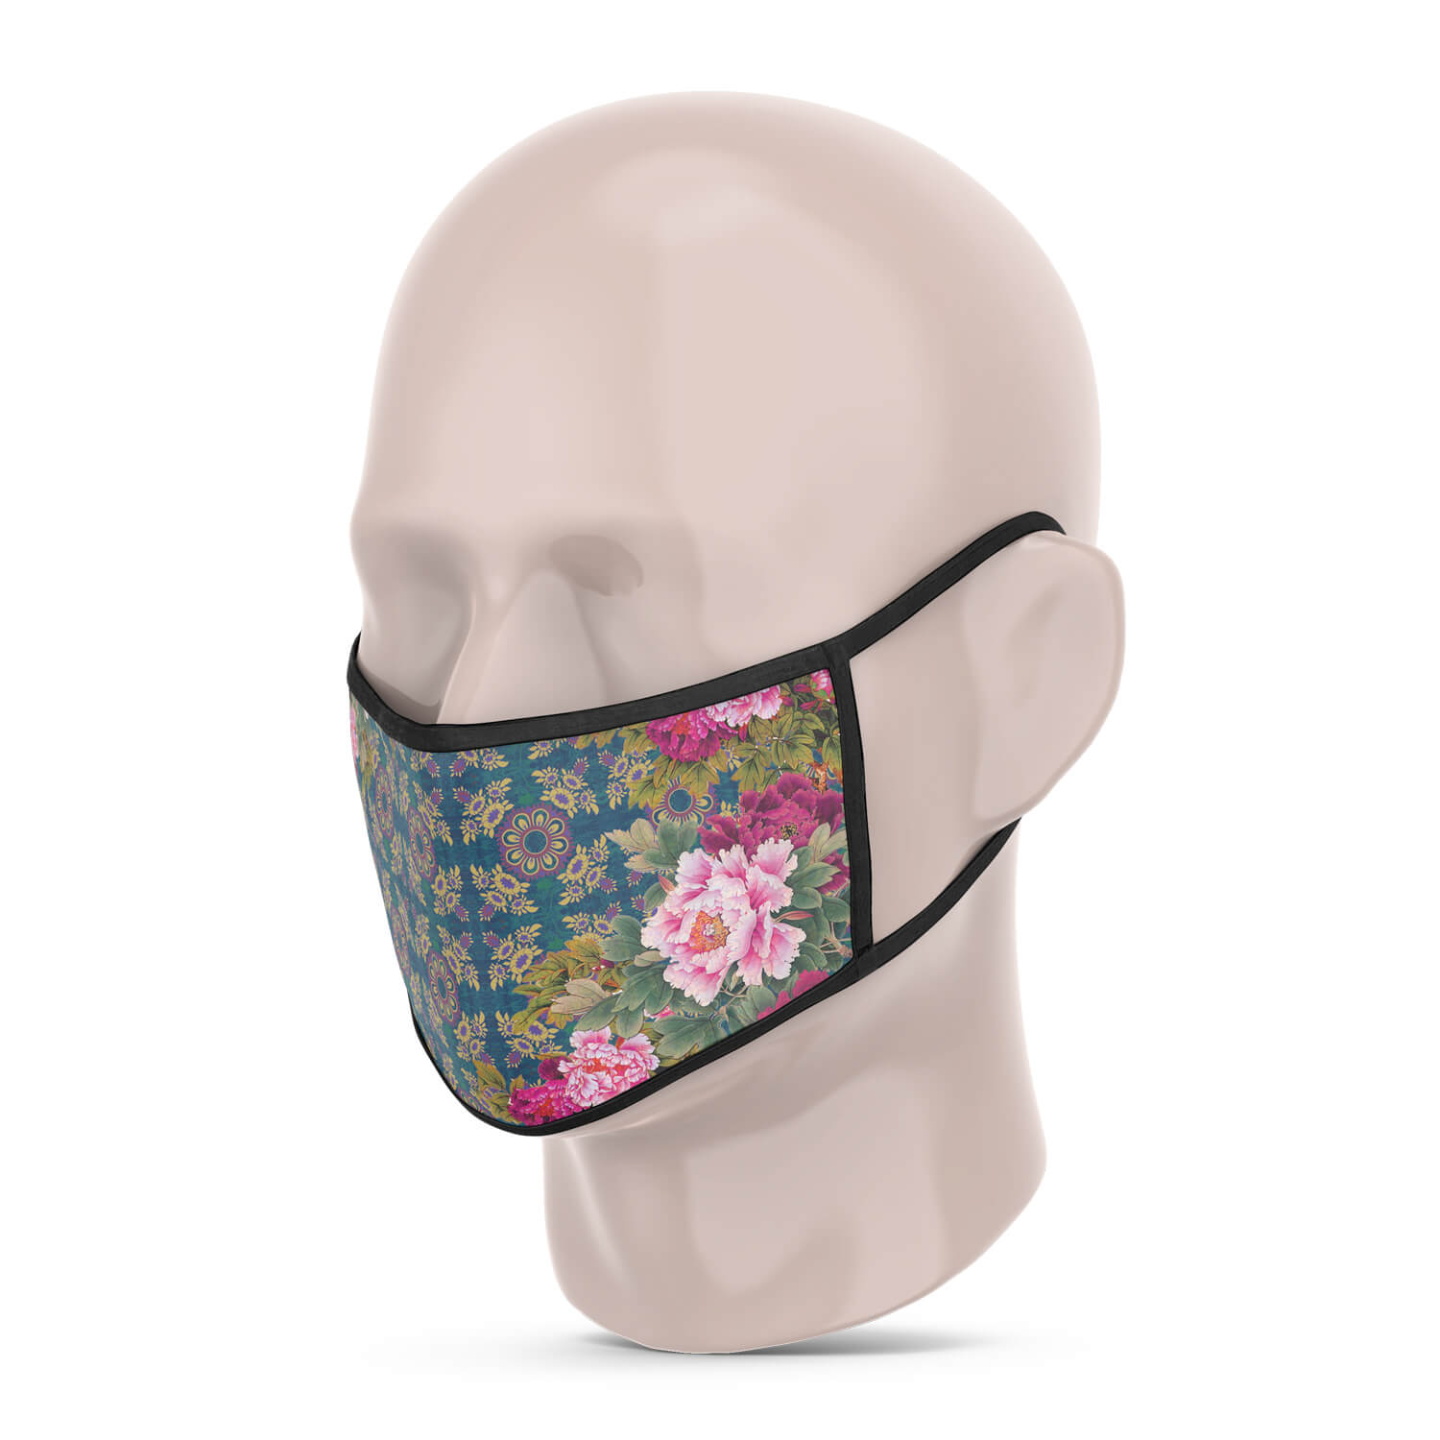 3 Layer Printed Protective Face Mask - Pack of 3 Green Combo